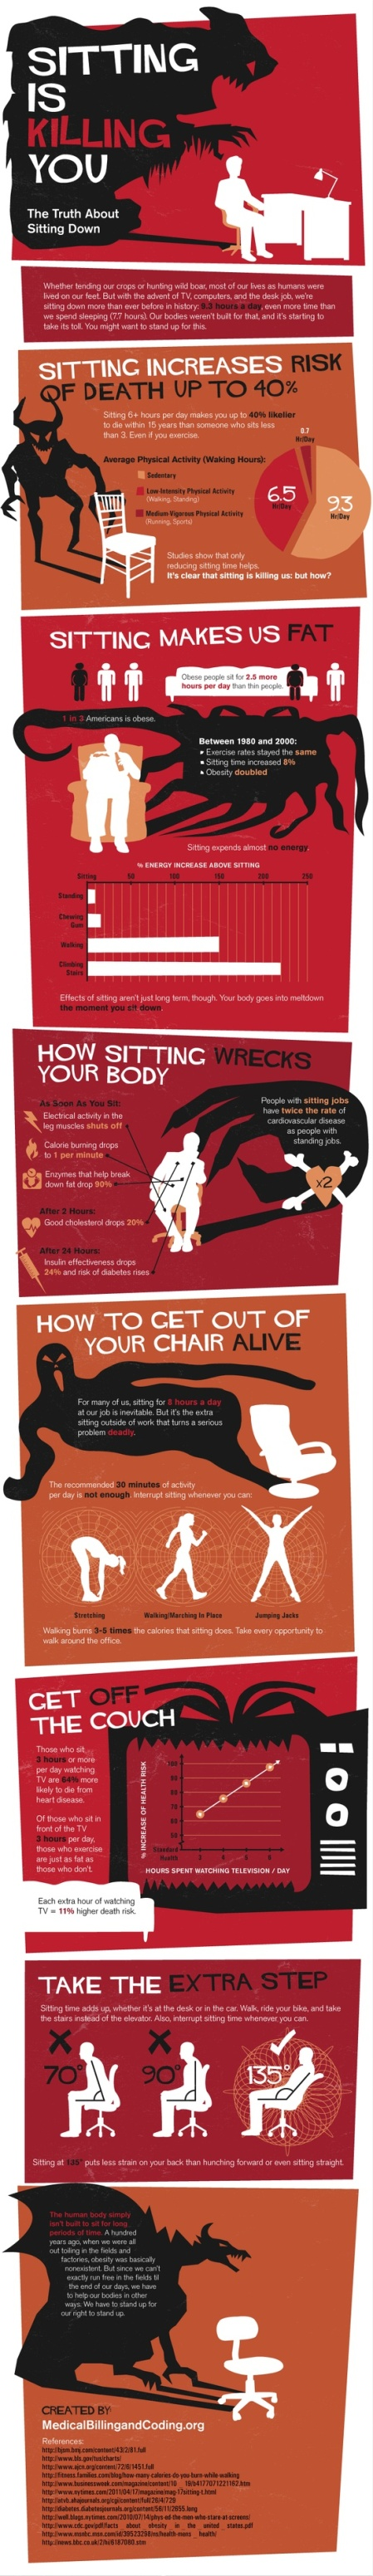 Sitting is Killing us infographic